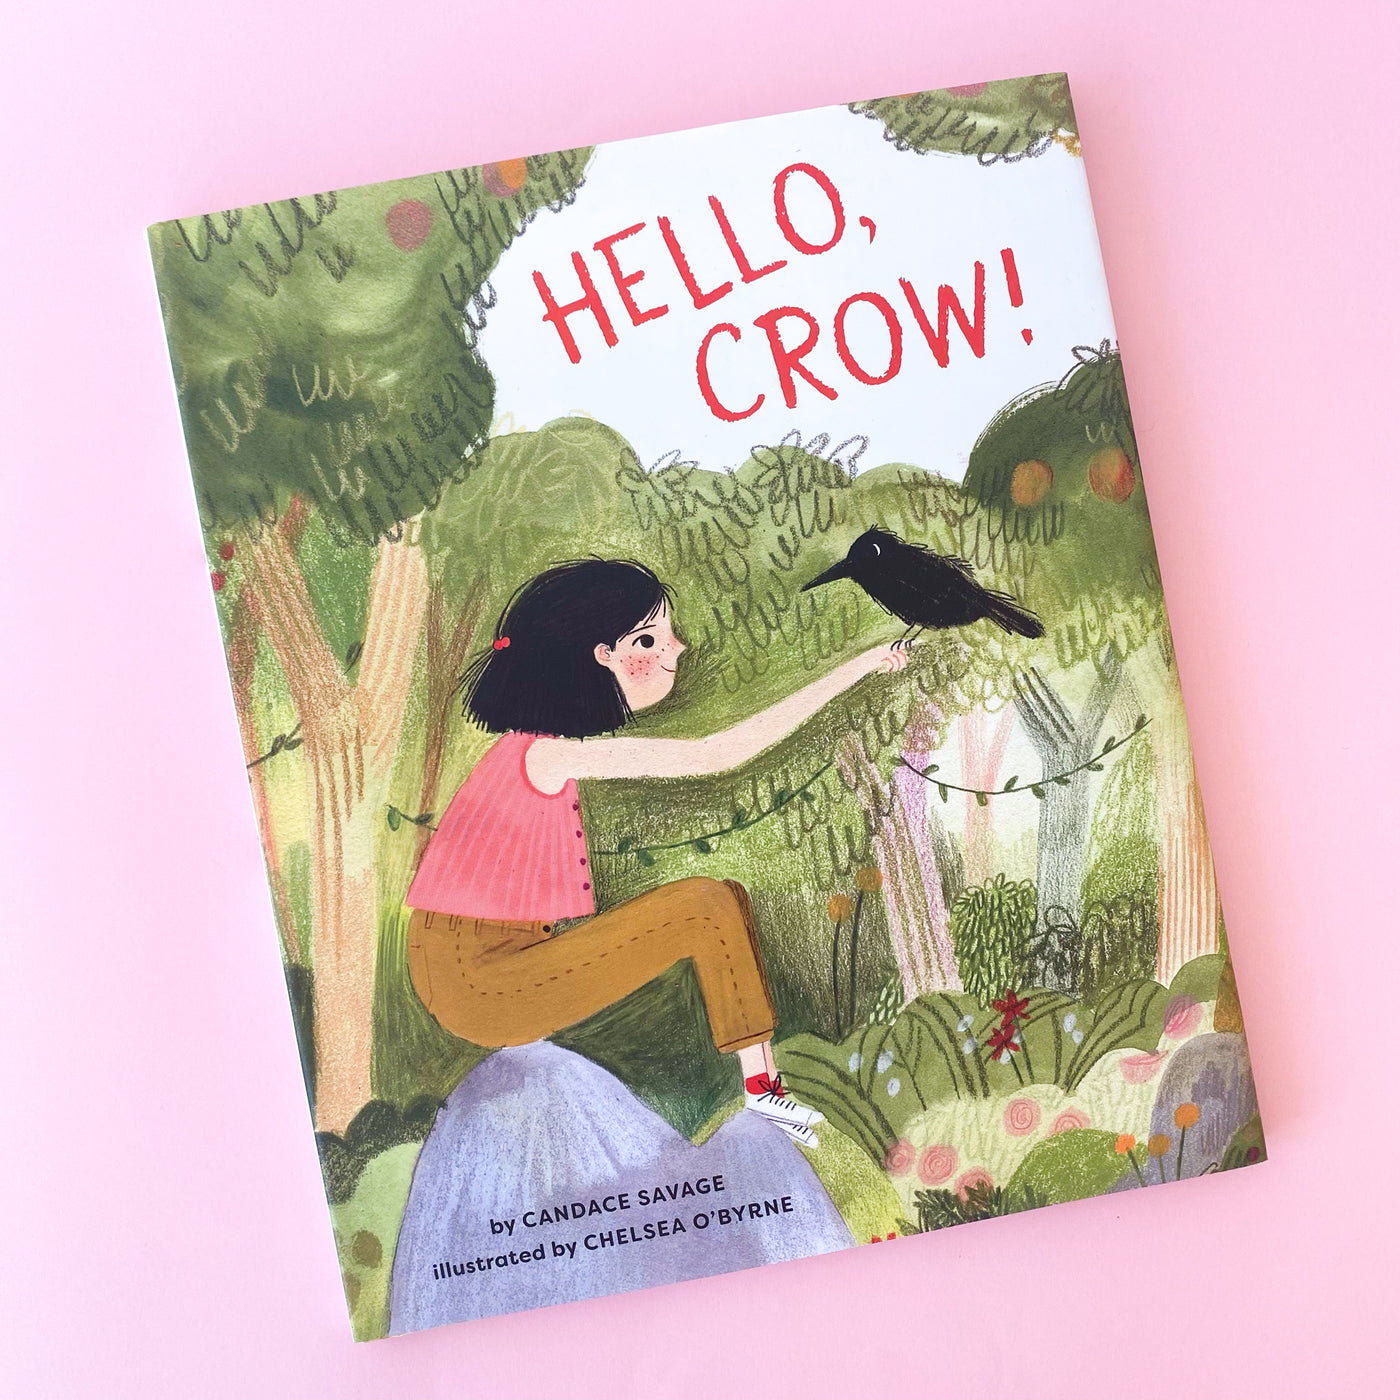 Hello Crow by Candace Savage Illustrated by Chelsea O'Byrne